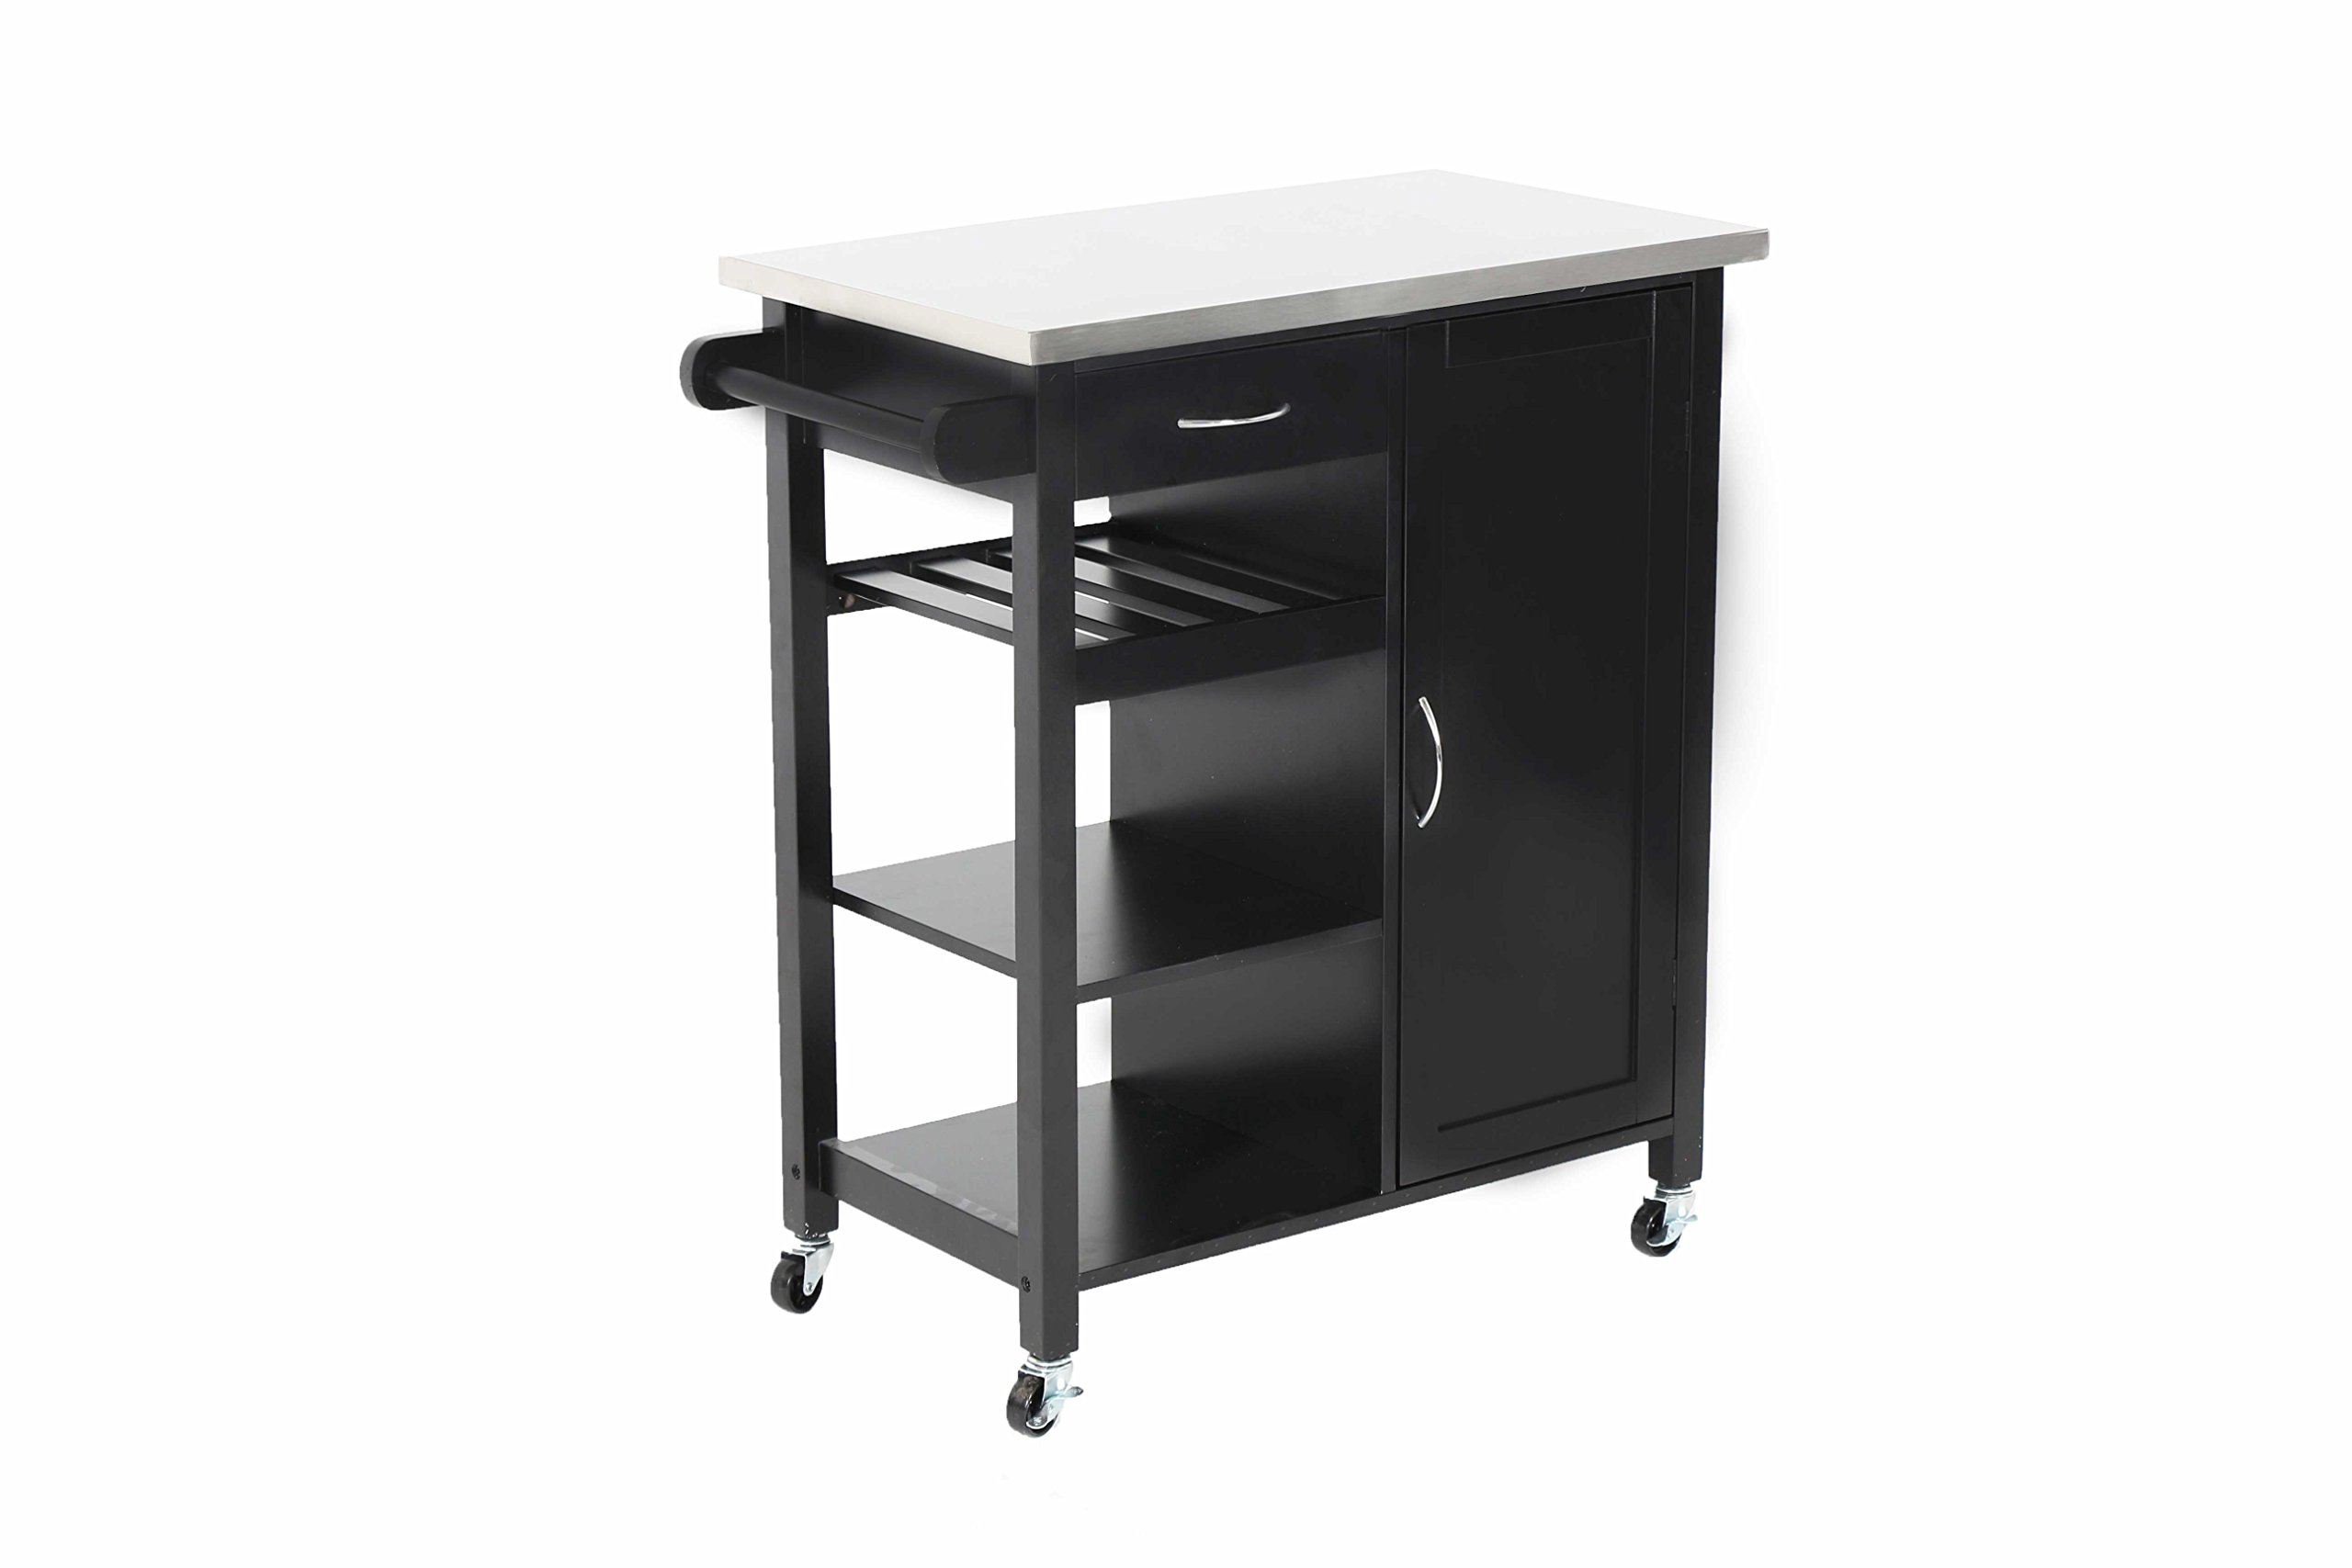 Oliver and Smith - Nashville Collection - Mobile Kitchen Island Cart on Wheels - Black - Stainless Steel Top - 32'' W x 17'' L x 36'' H 102118-01blk